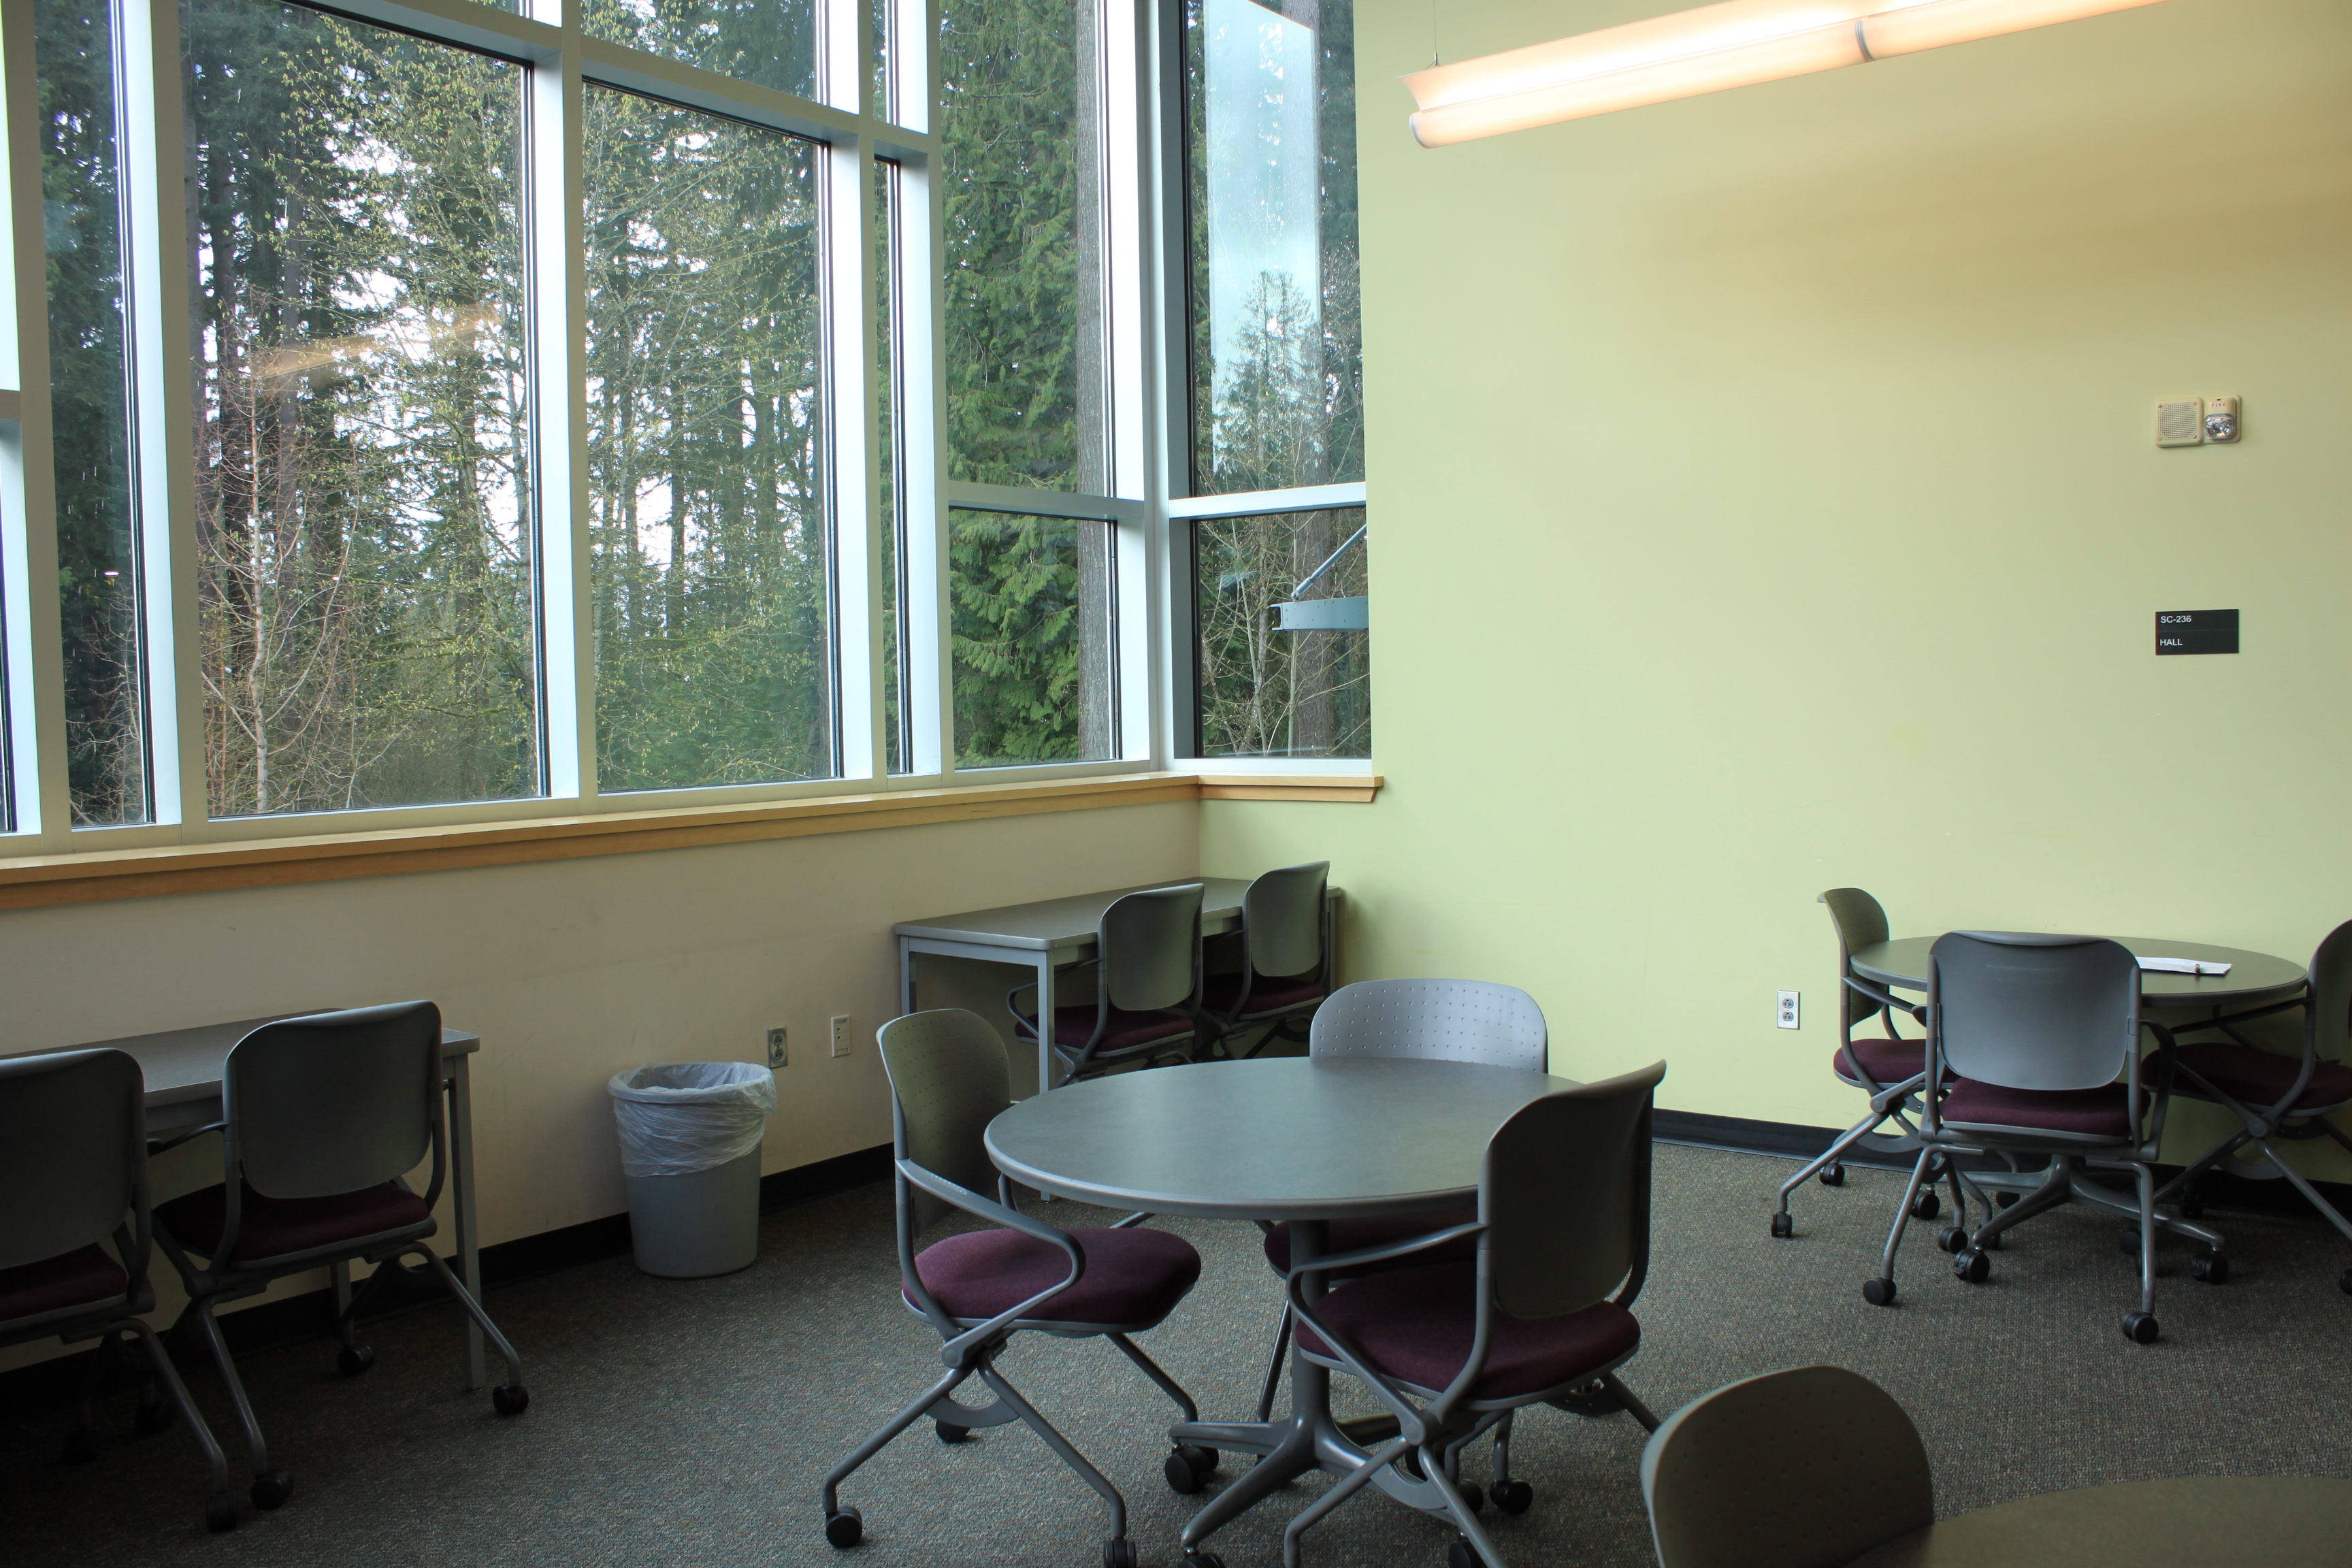 study area with tables, chairs, large windows